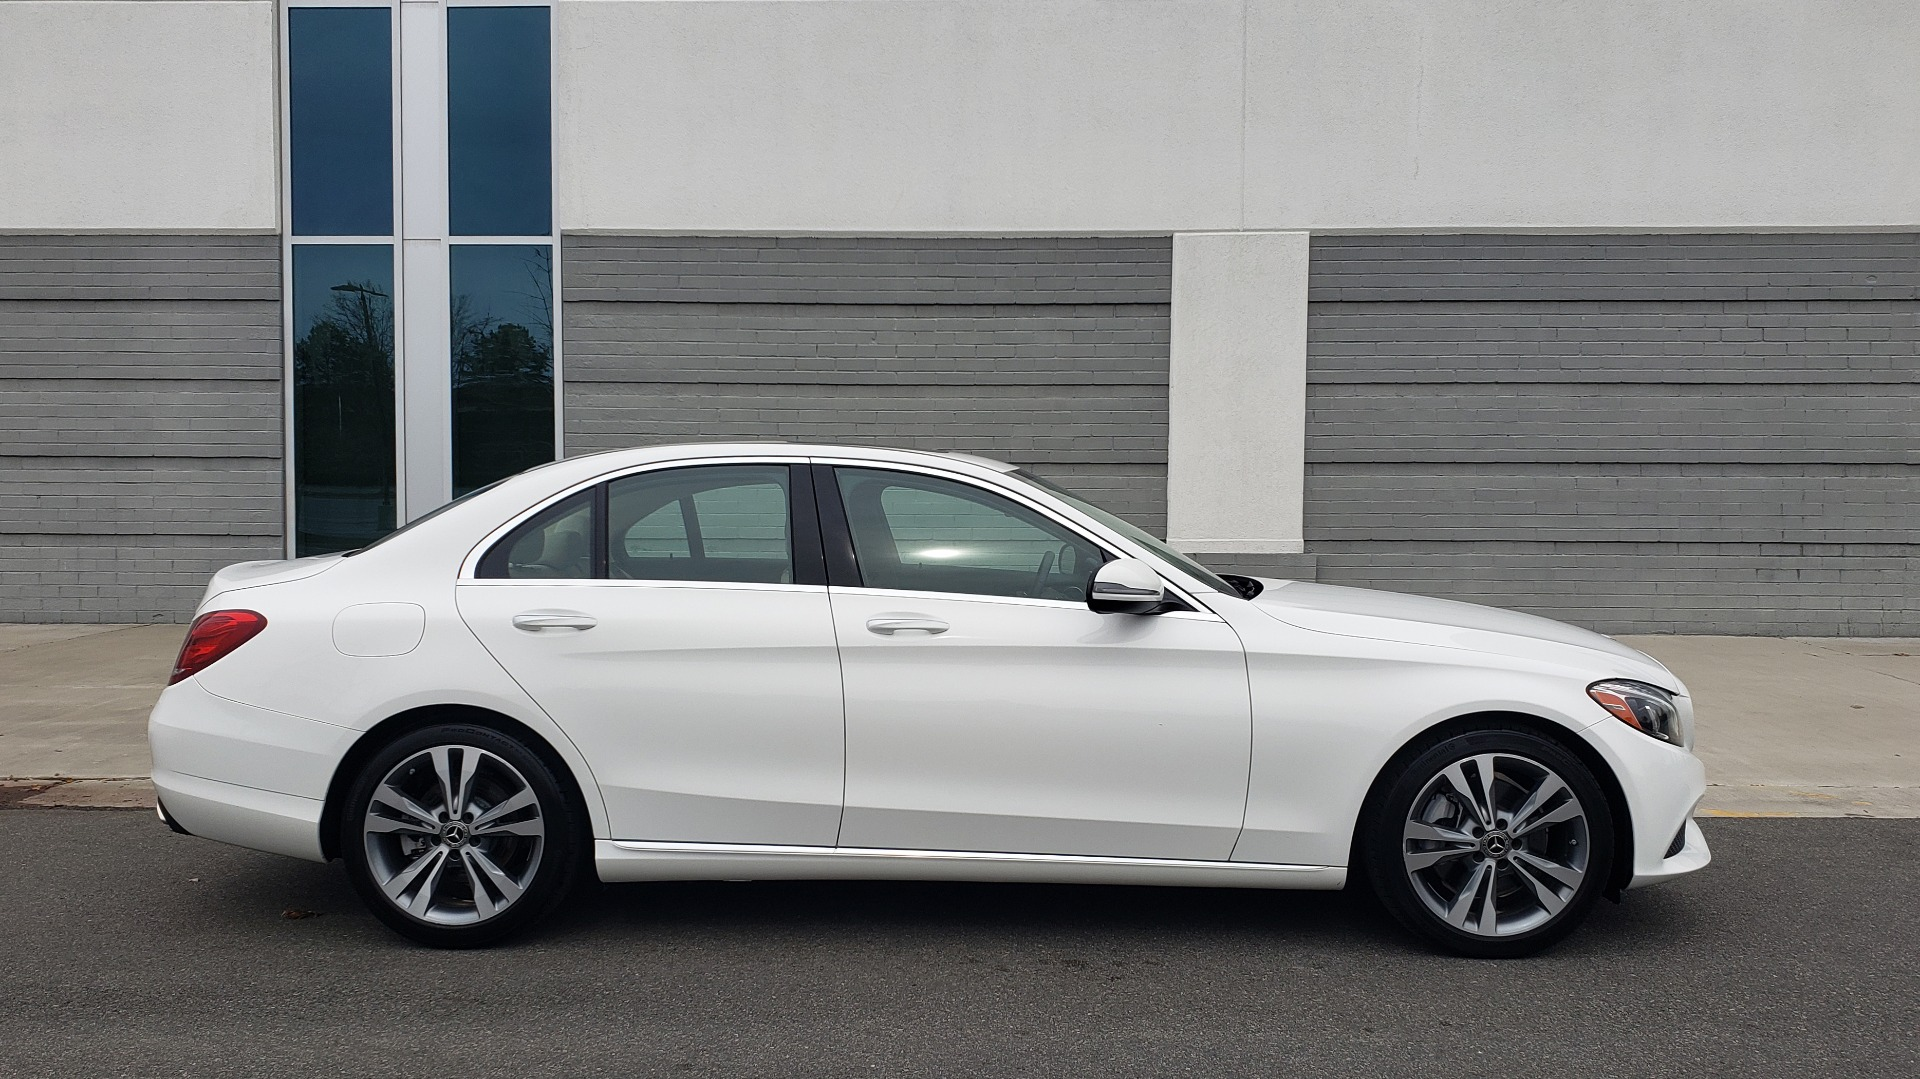 Used 2018 Mercedes-Benz C-CLASS C 300 PREMIUM / NAV / HTD STS / APPLY CARPLAY / REARVIEW for sale $26,695 at Formula Imports in Charlotte NC 28227 6